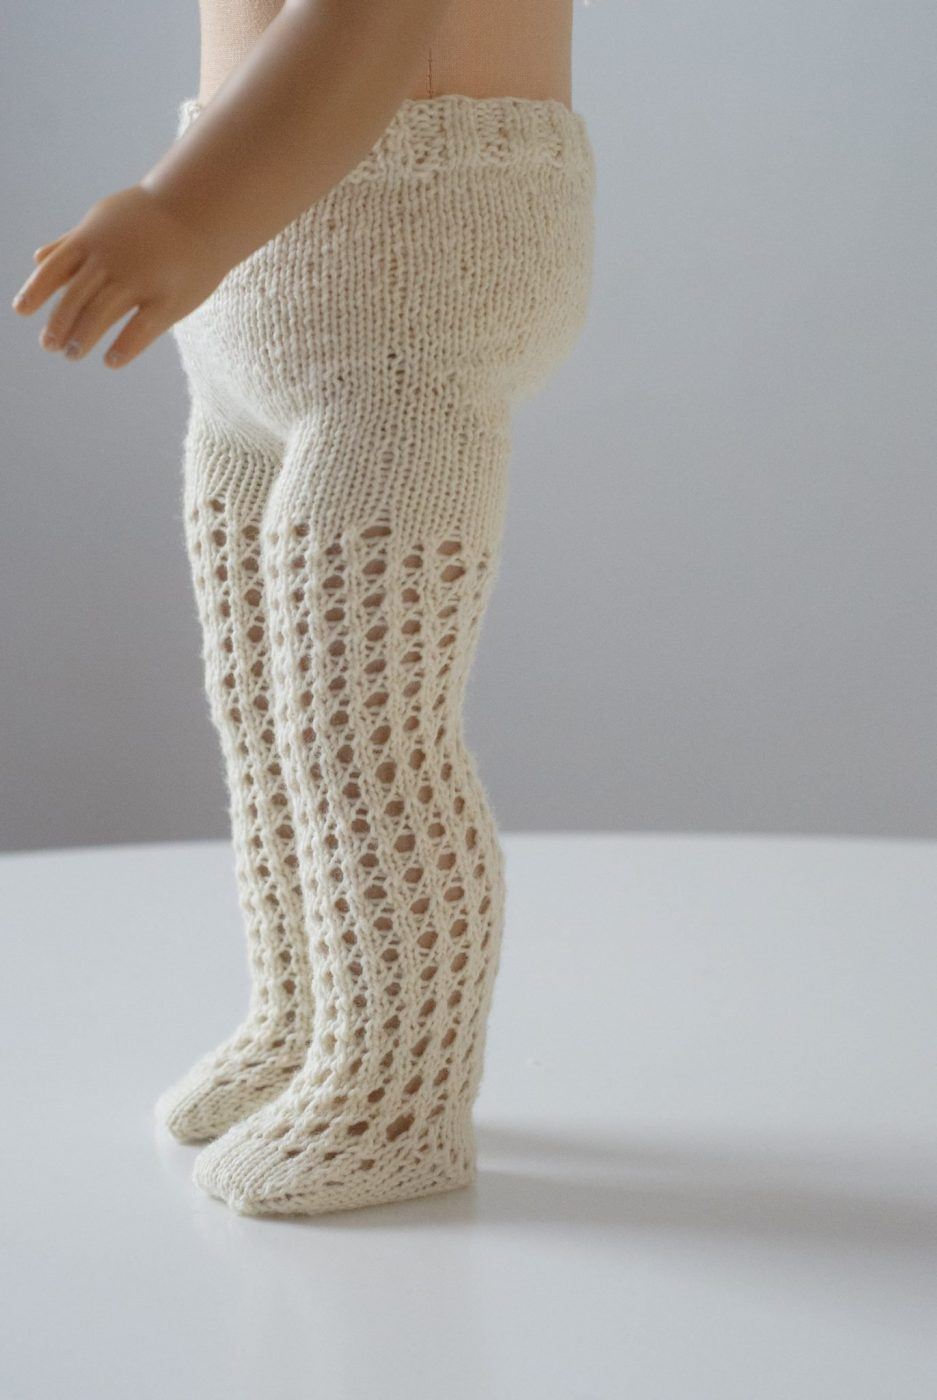 Tights Knitting Pattern : The Doll Tights Knitting Pattern for 18? Dolls   The Eli Monster